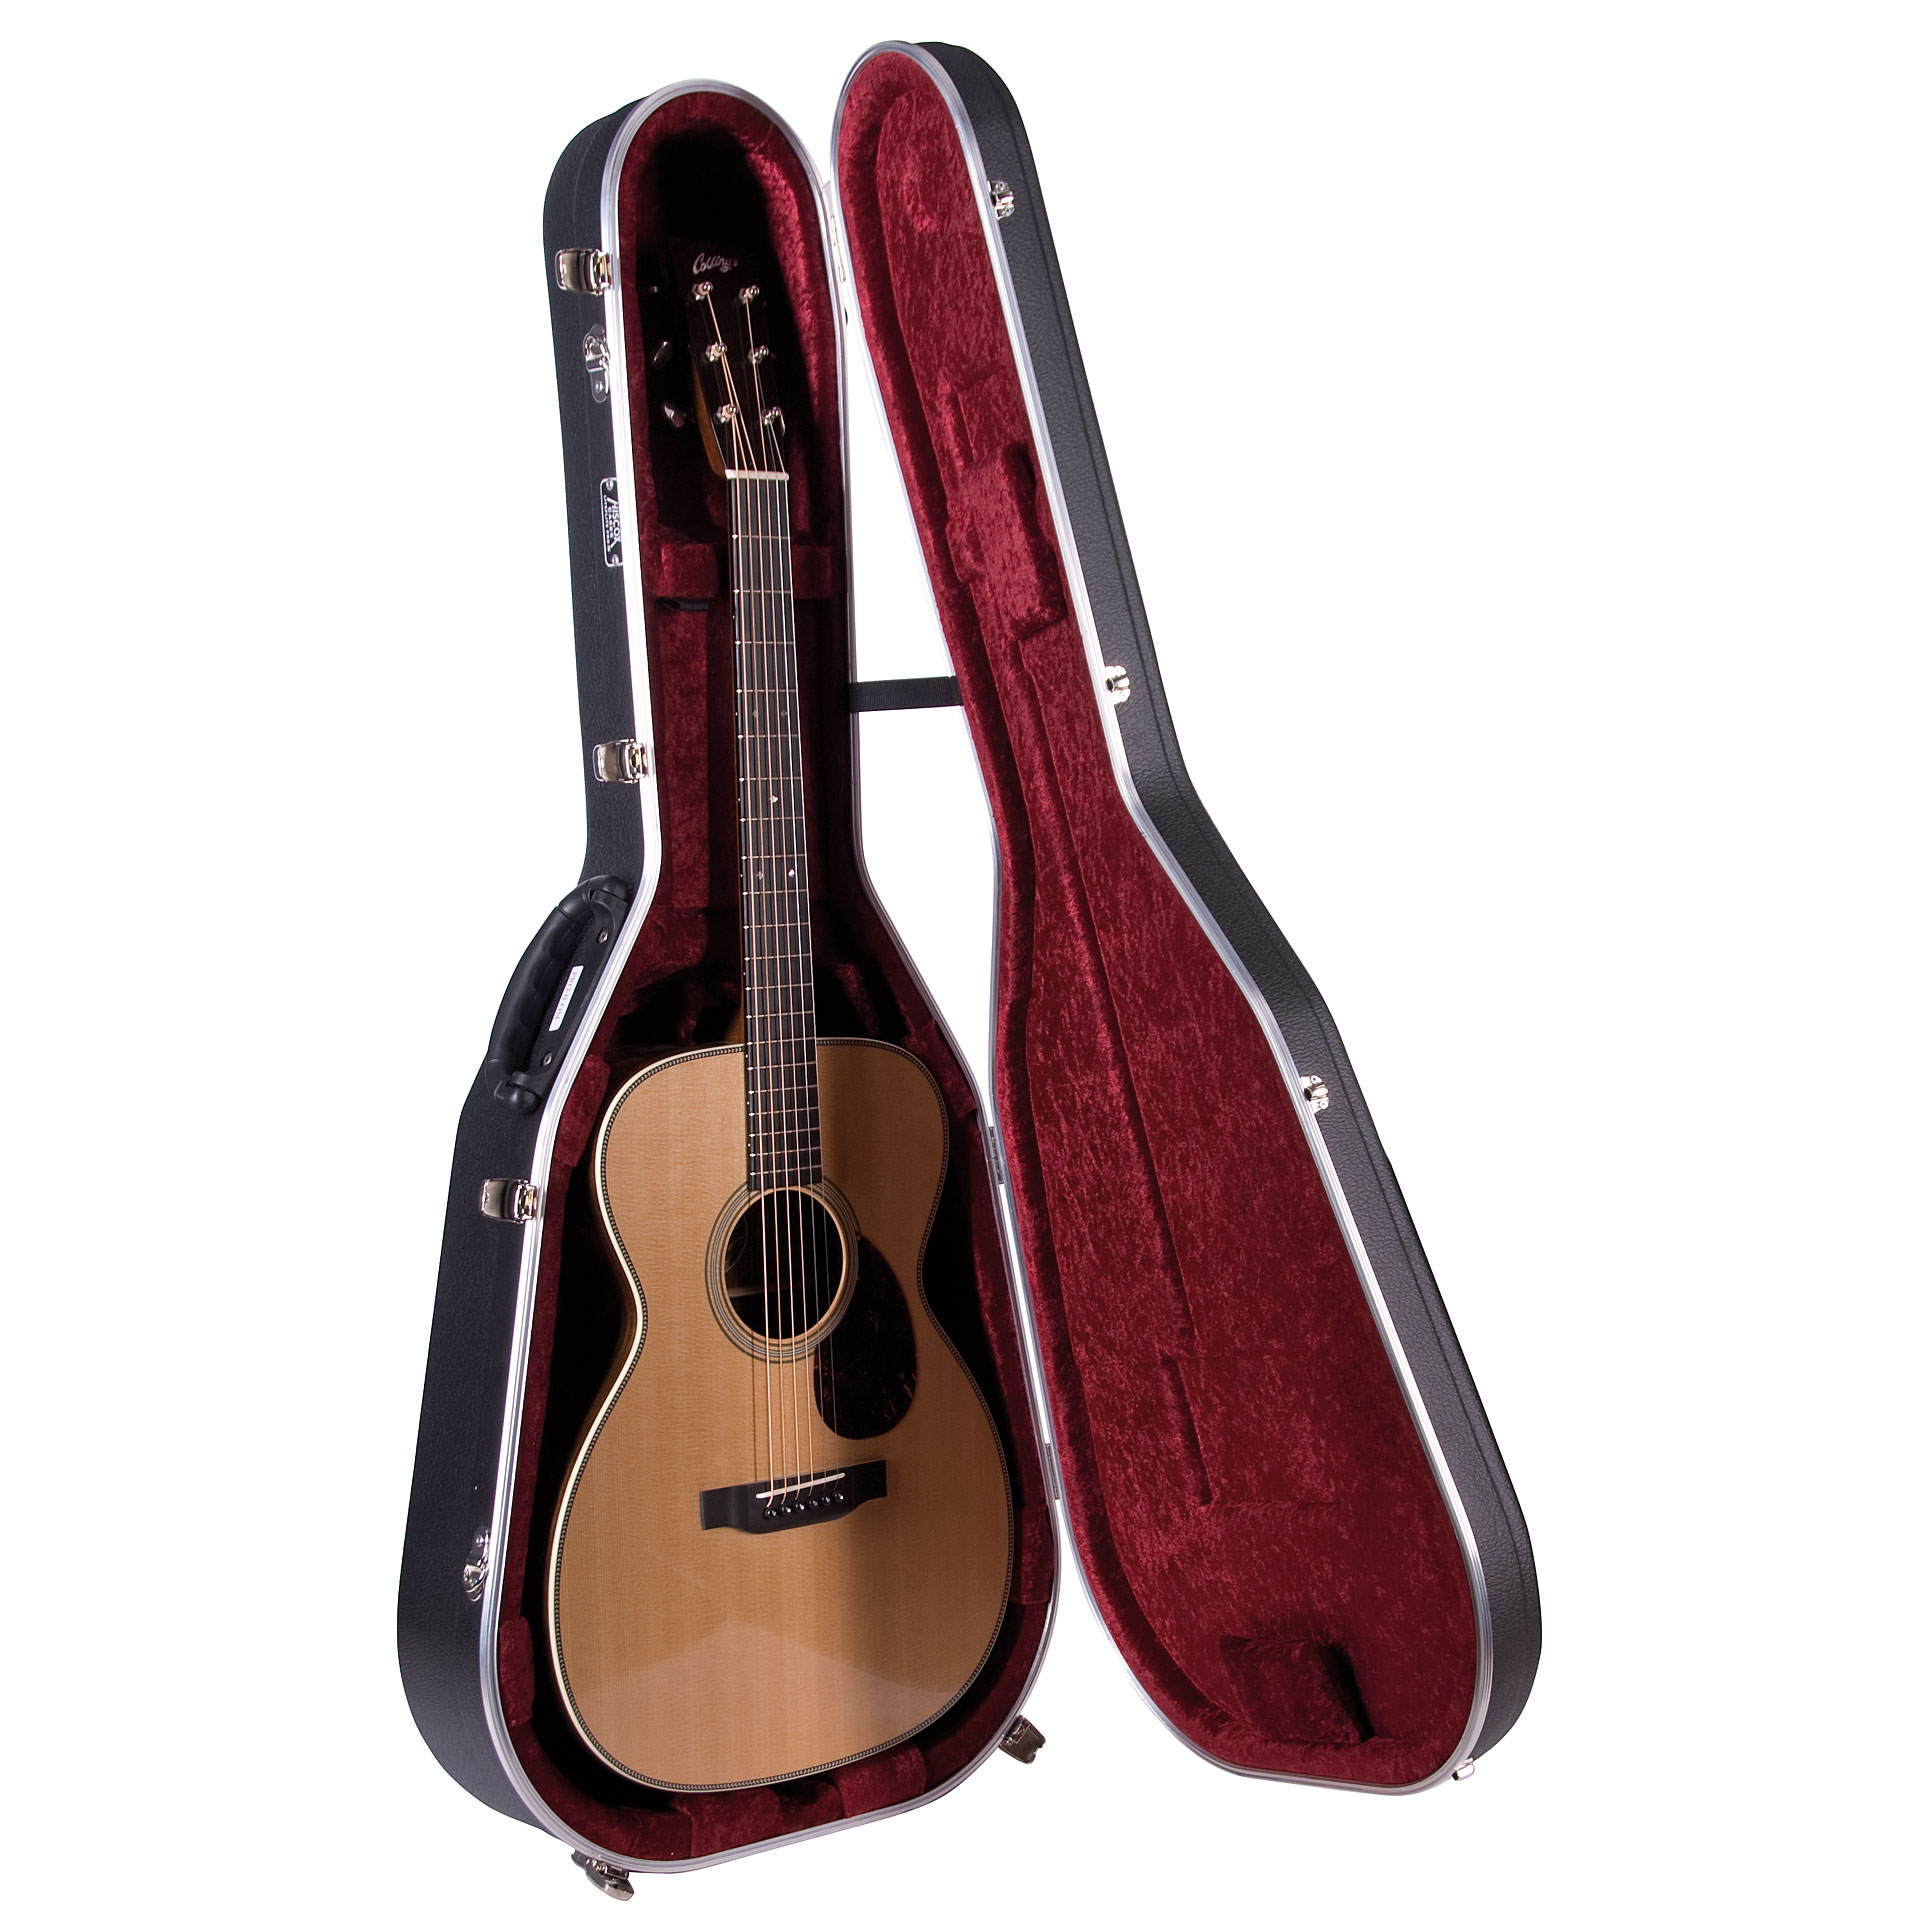 hiscox pro ii om ooo acoustic guitar case. Black Bedroom Furniture Sets. Home Design Ideas